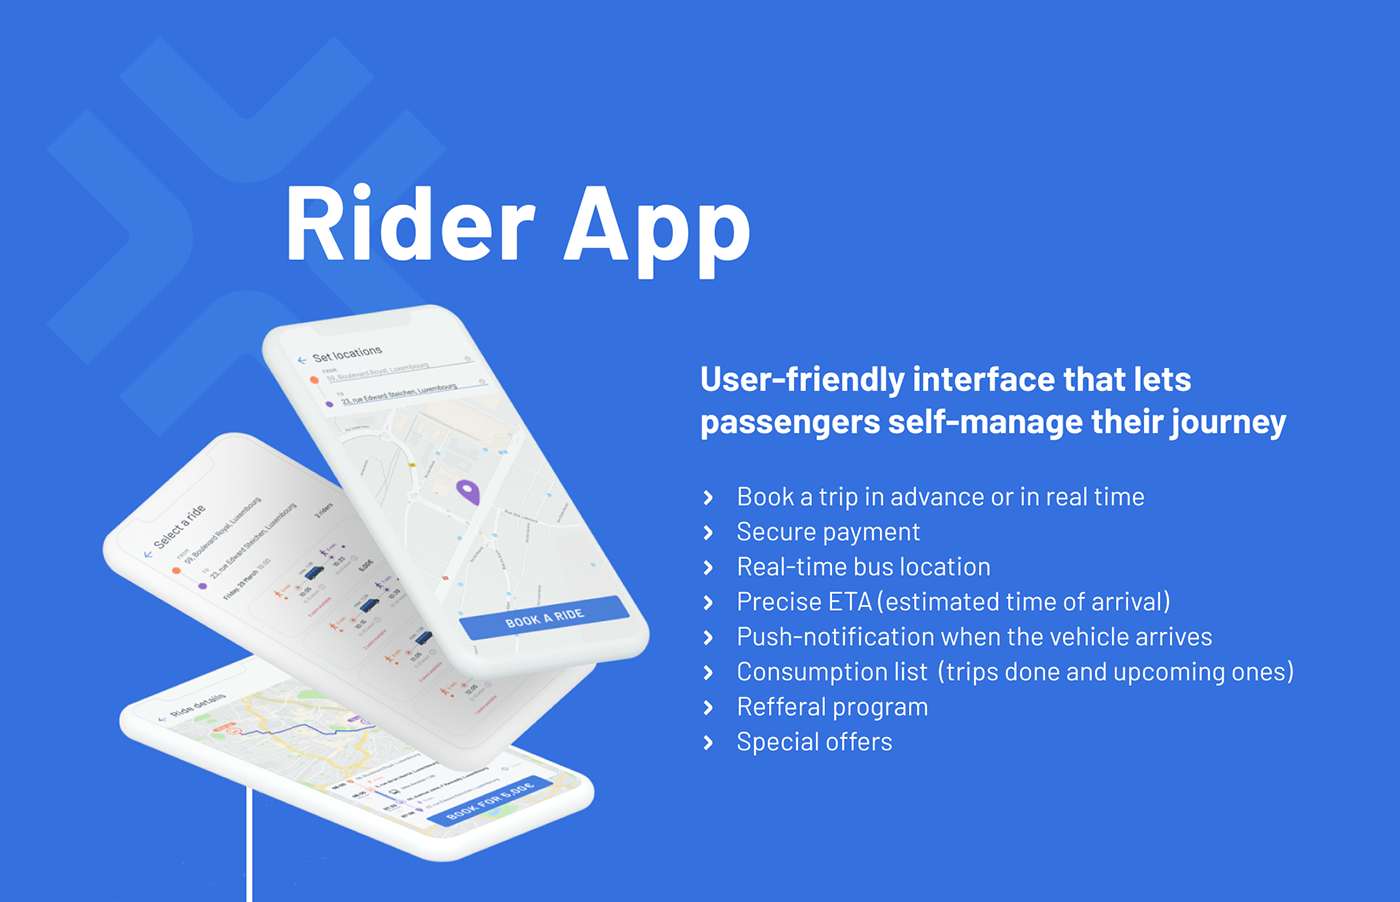 UFT Rider App  - User-friendly interface that lets passengers self-manage their journey